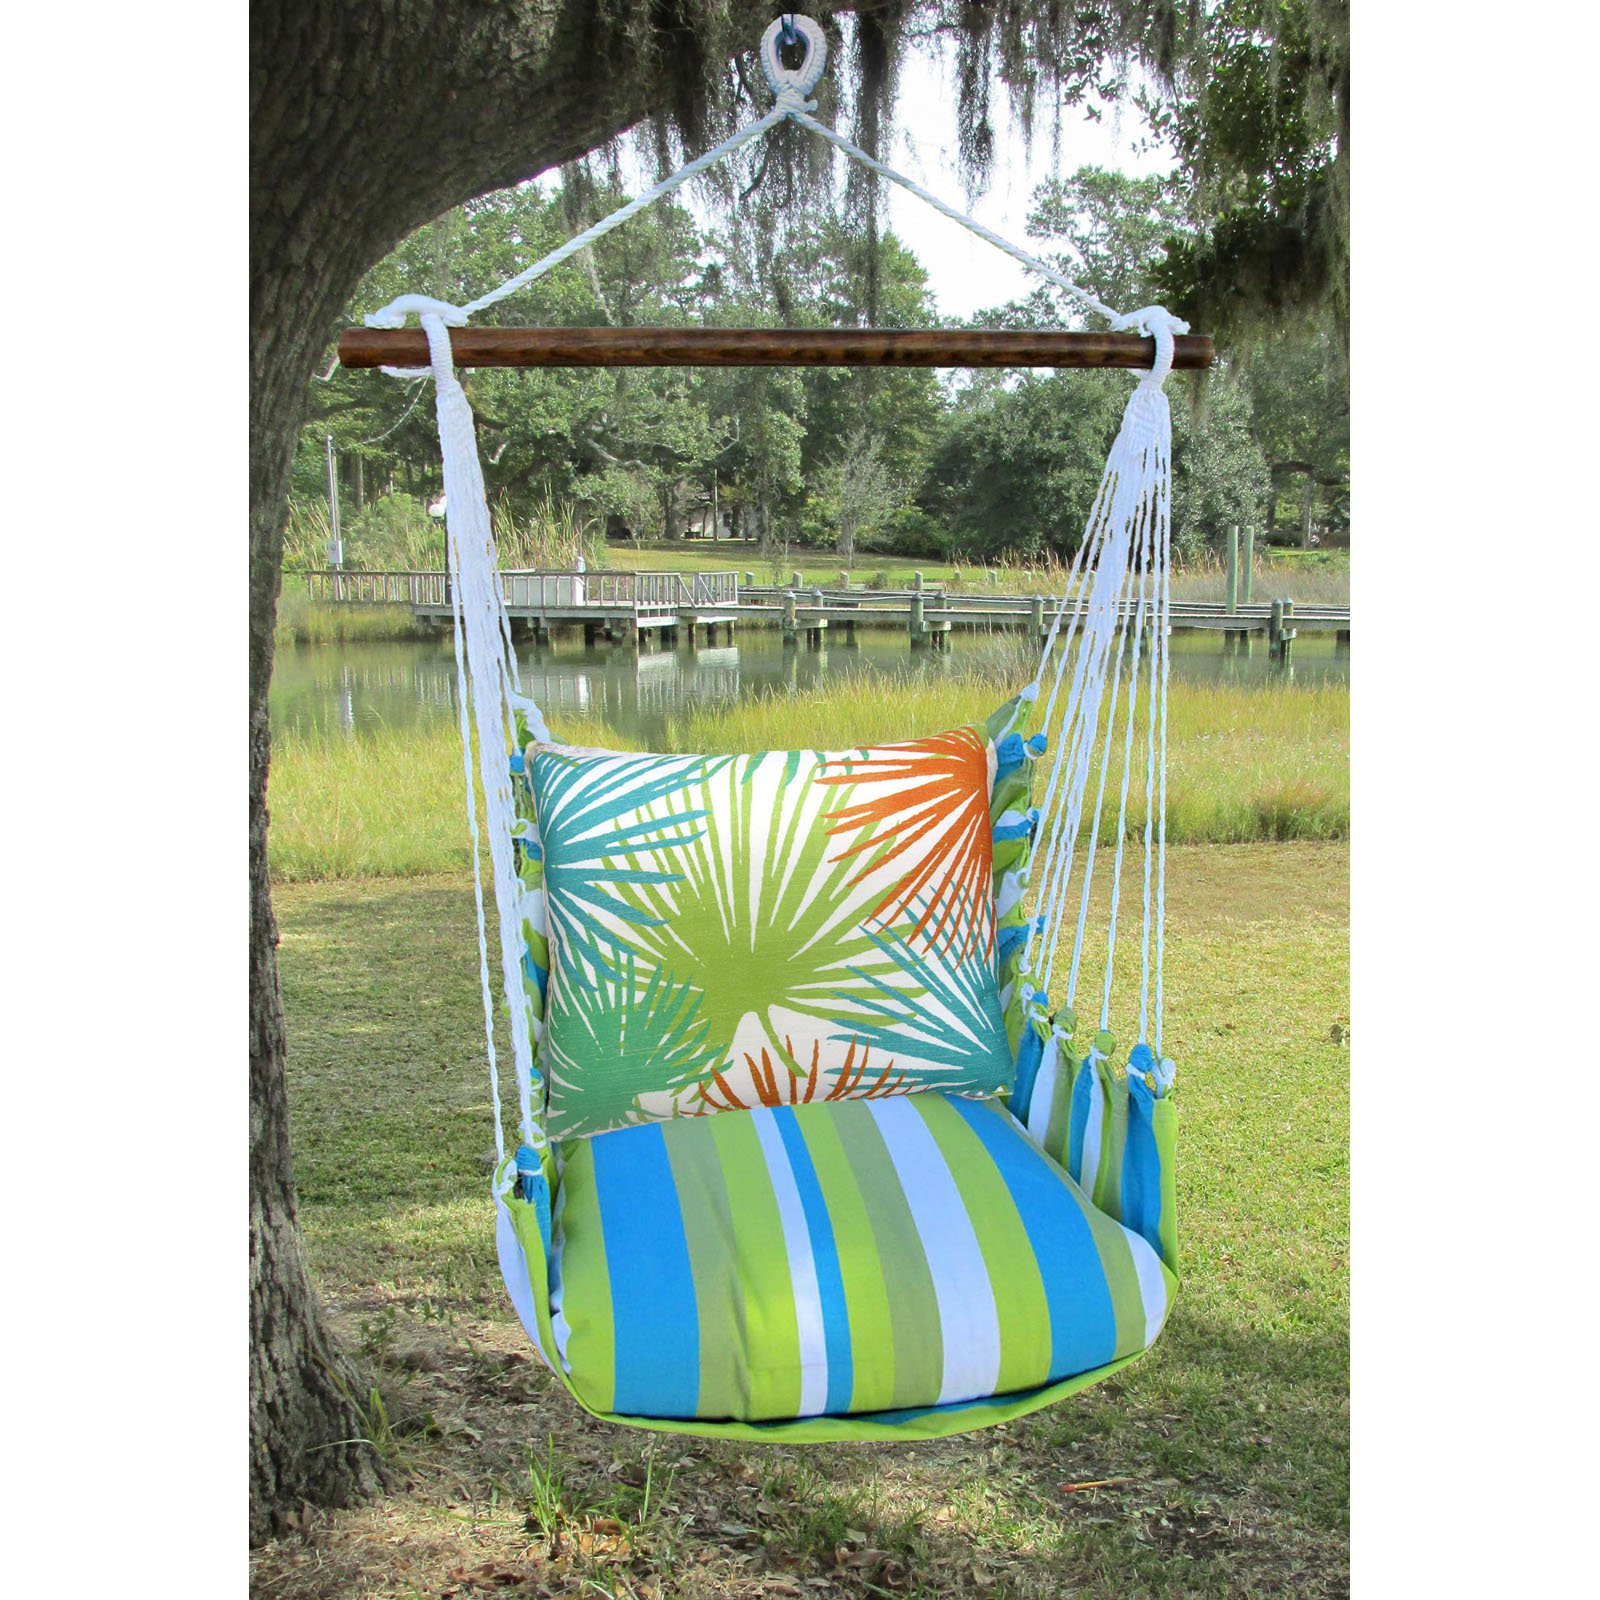 Magnolia Casual Beach Boulevard Outdoor Hammock Chair Set with Pillow